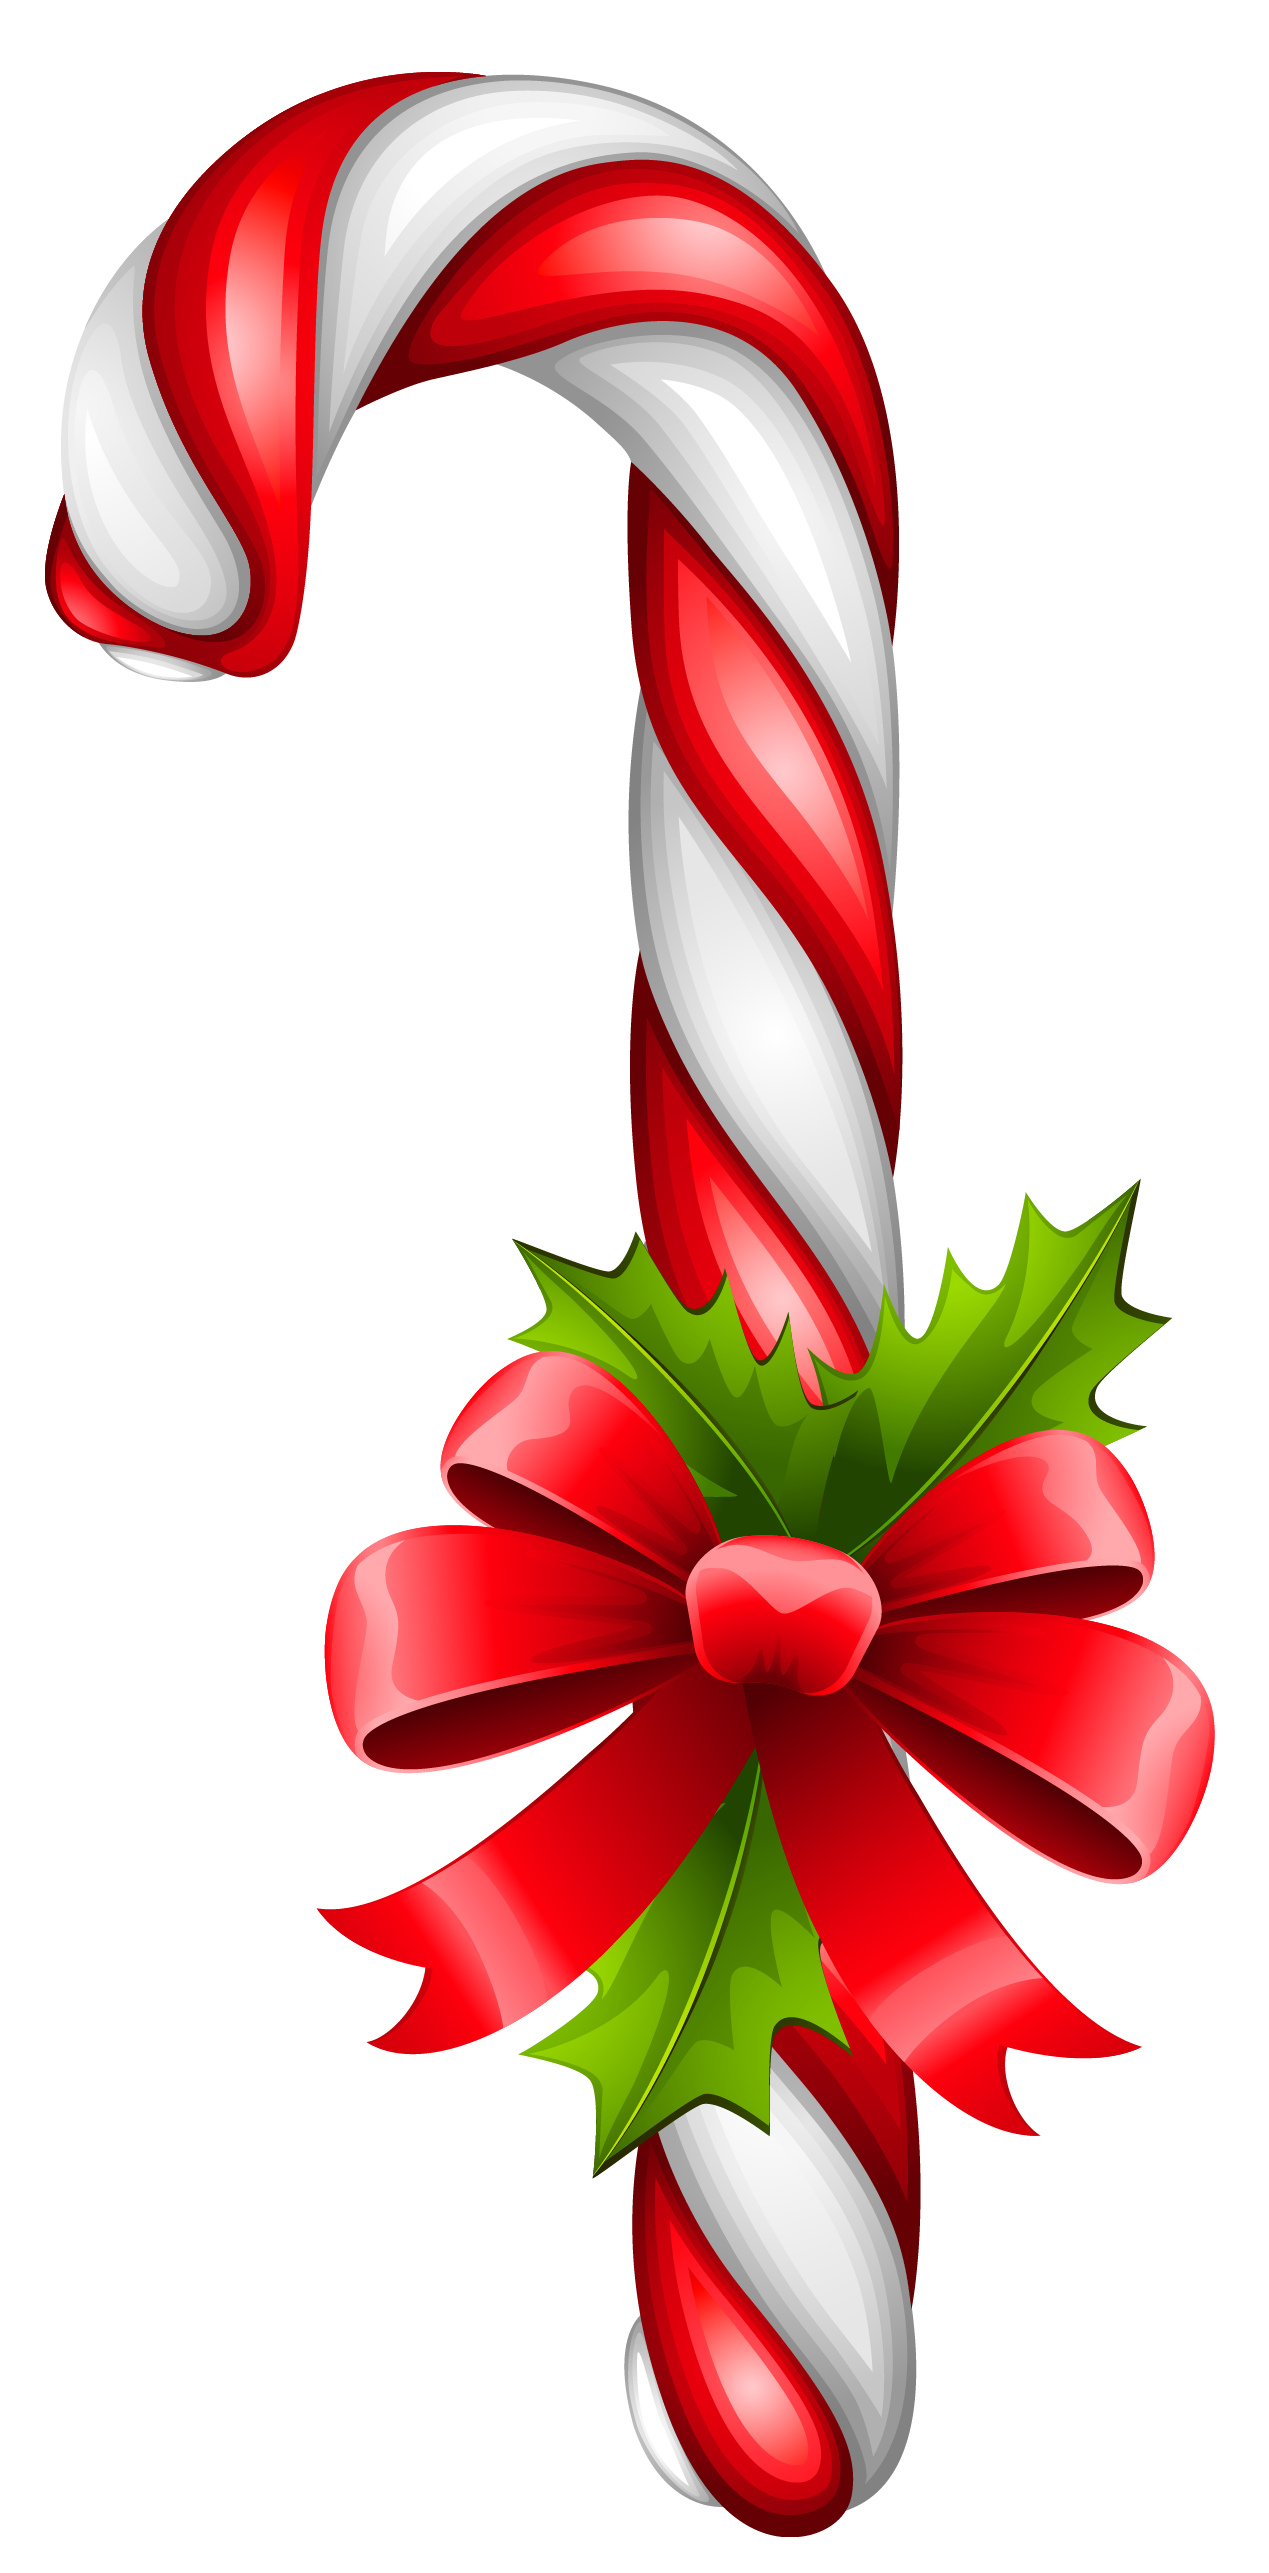 Candy cane clipart transparent background png free download Christmas Candy Cane Transparent PNG Clipart | Gallery Yopriceville ... png free download